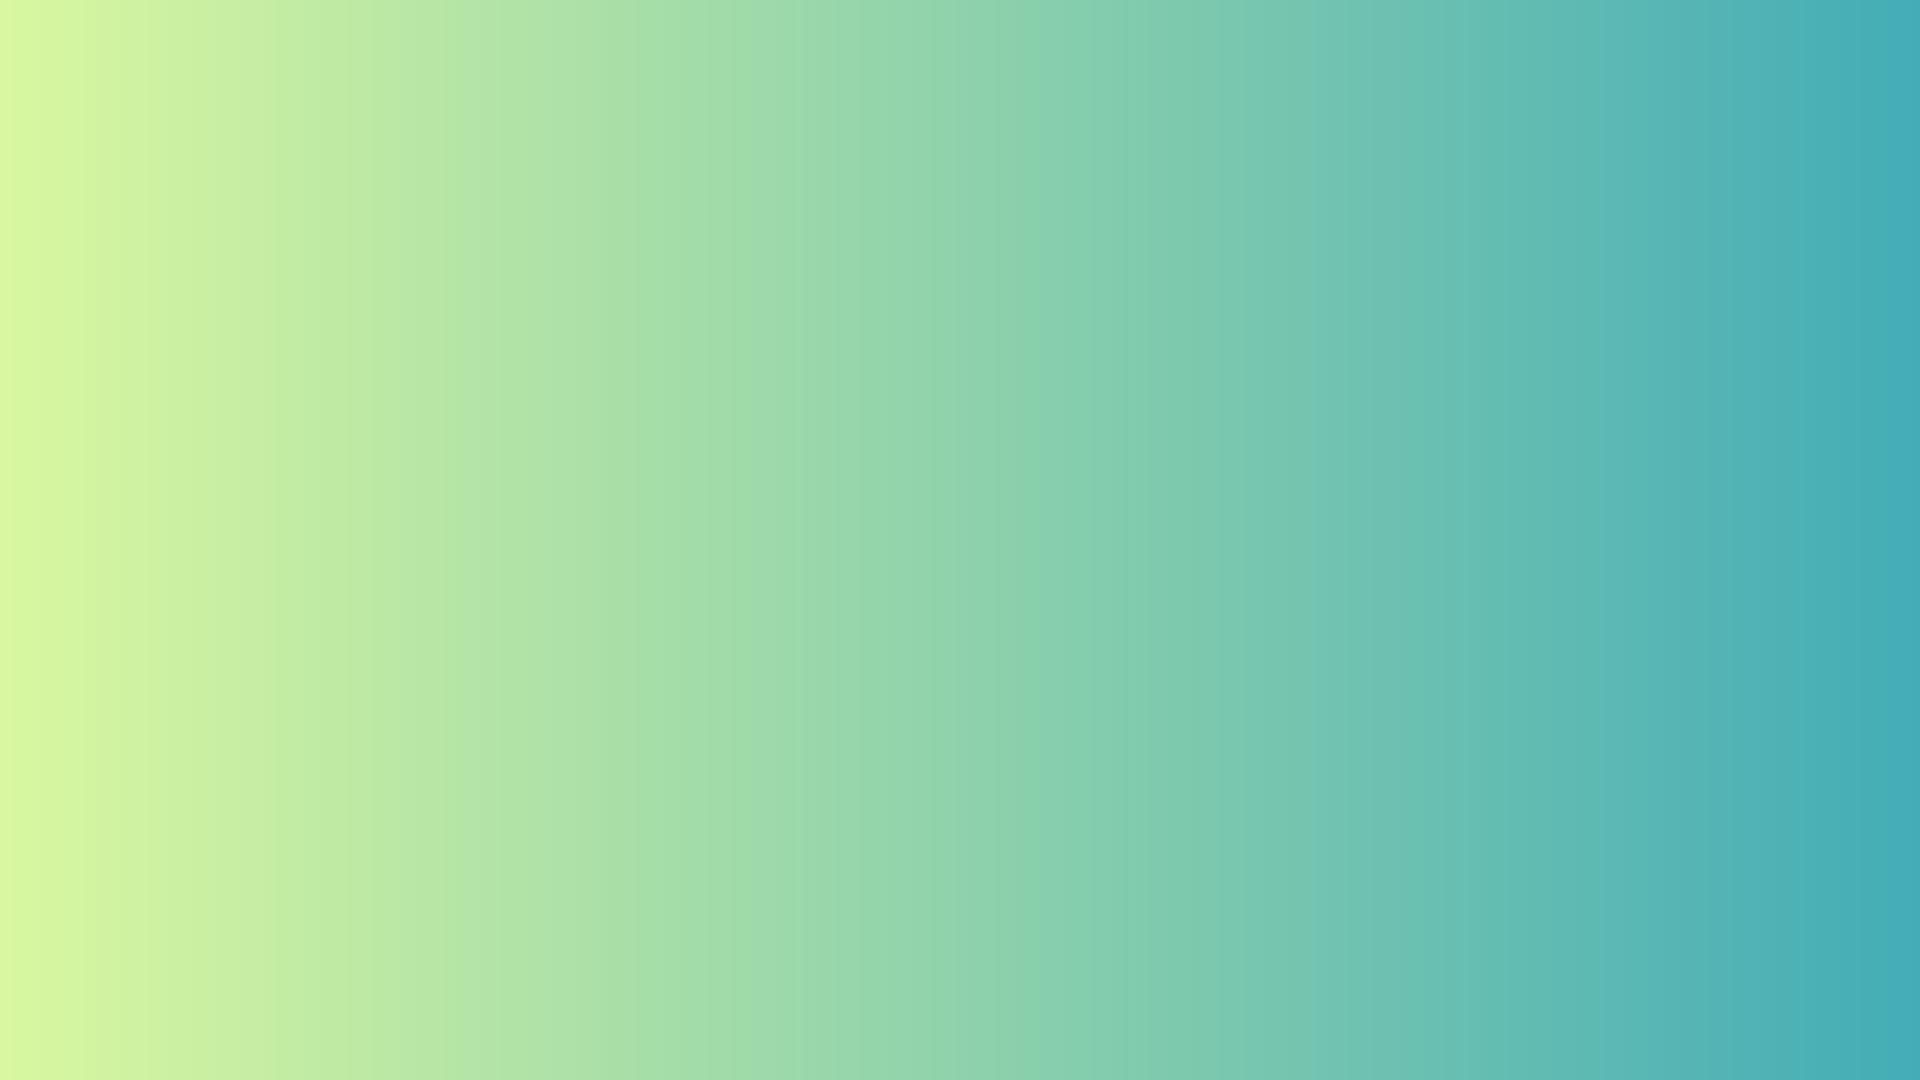 Light Green Gradient Gradient